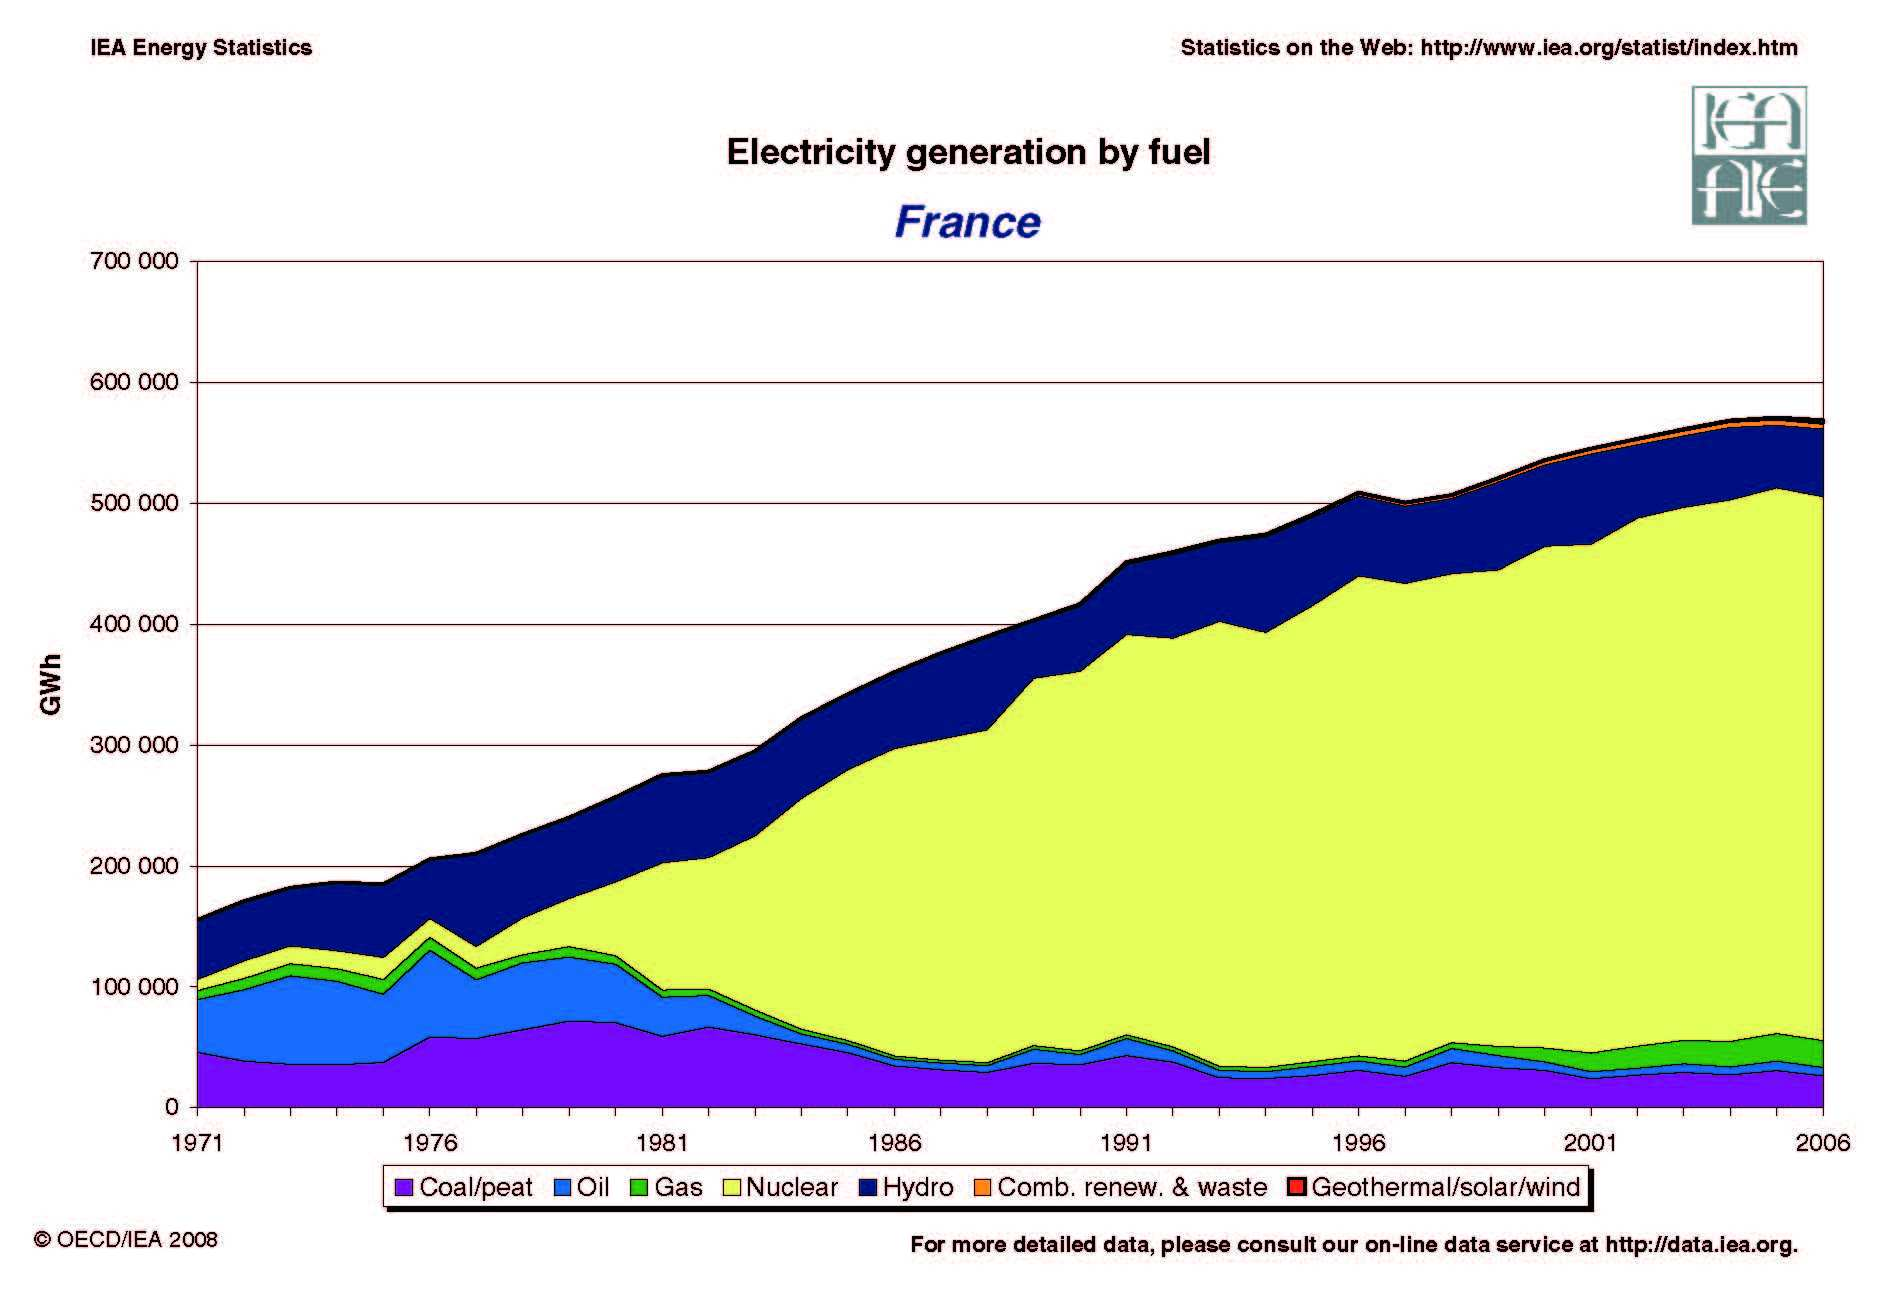 france electricity generation by fuel, energy issues, energy